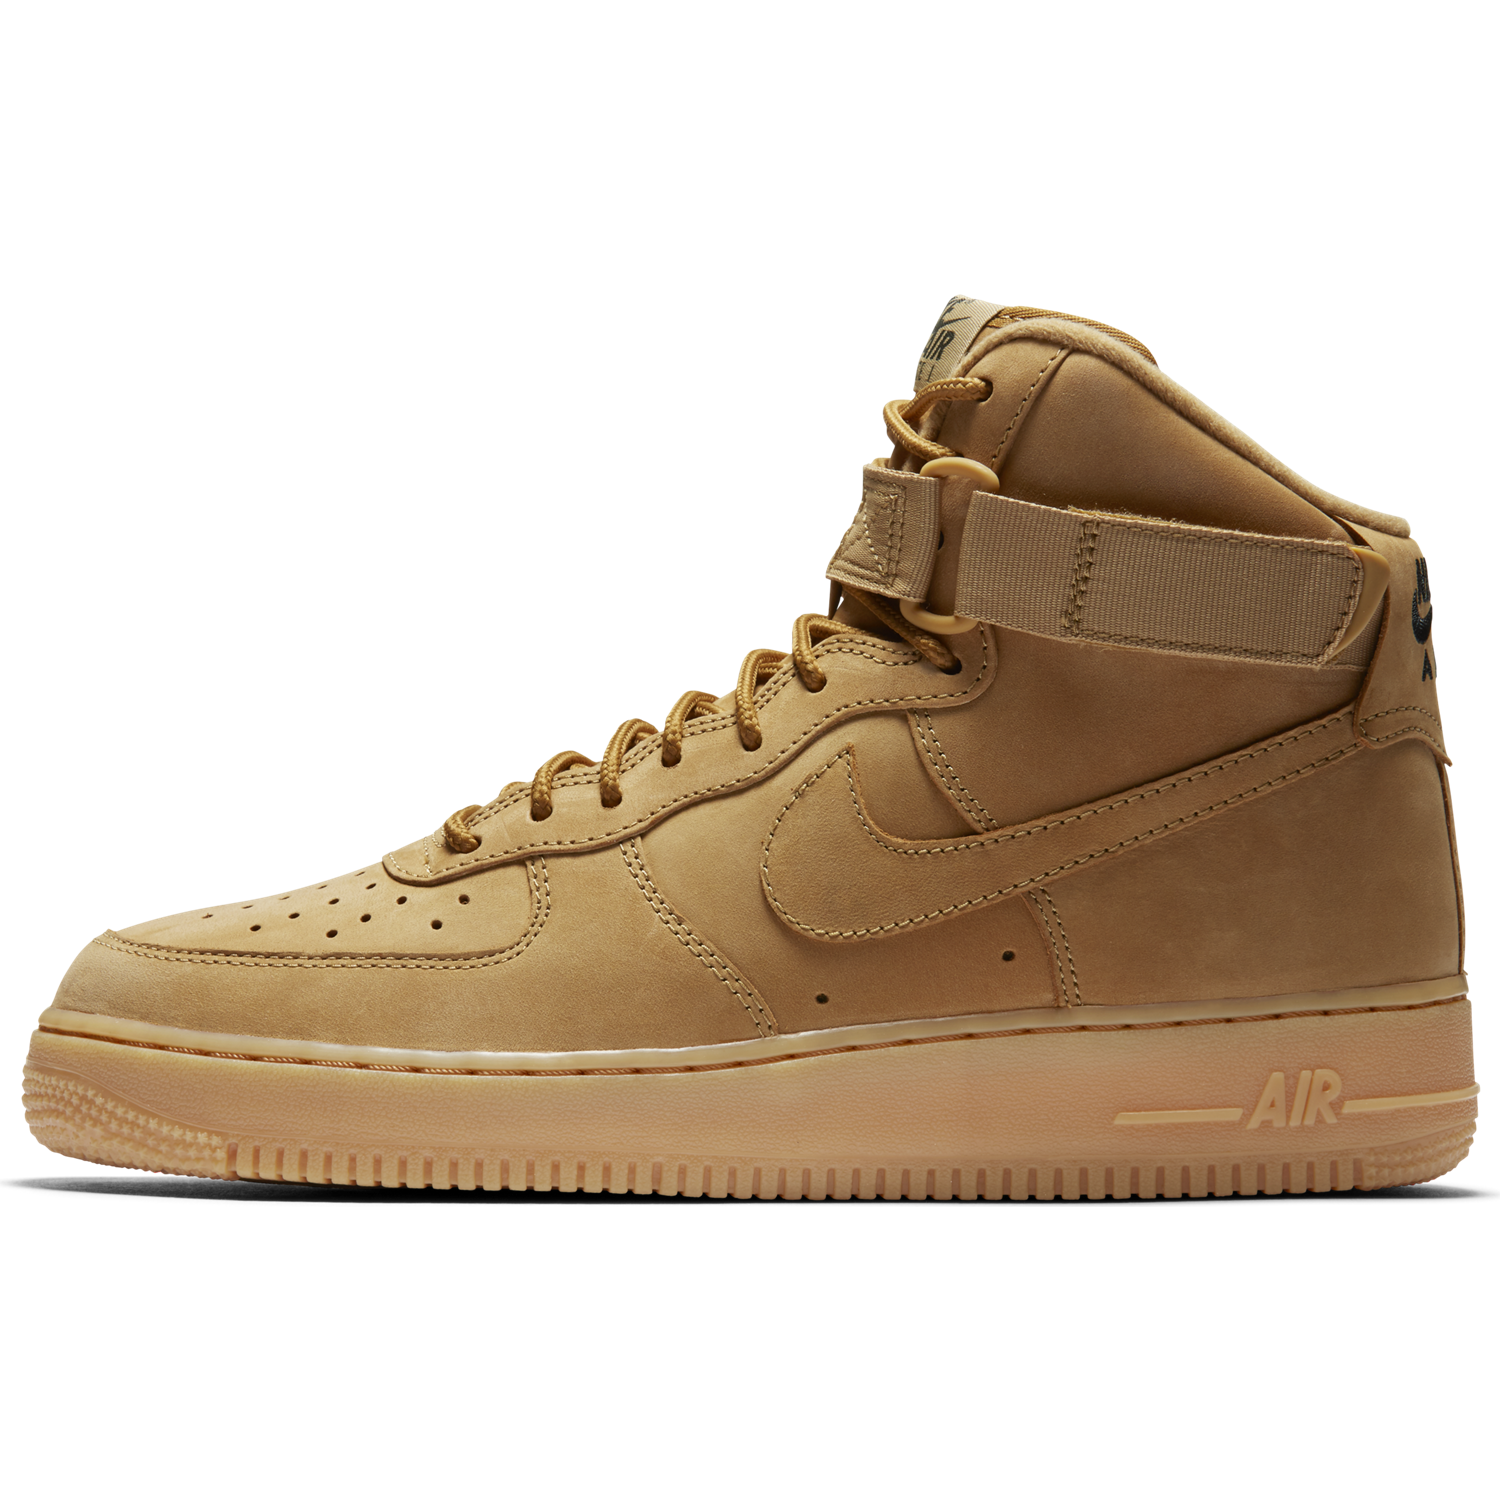 best service aef2c 6849e ... BUTY MĘSKIE NIKE AIR FORCE 1 HIGH 07 LV8 FLAX 882096-200 ...